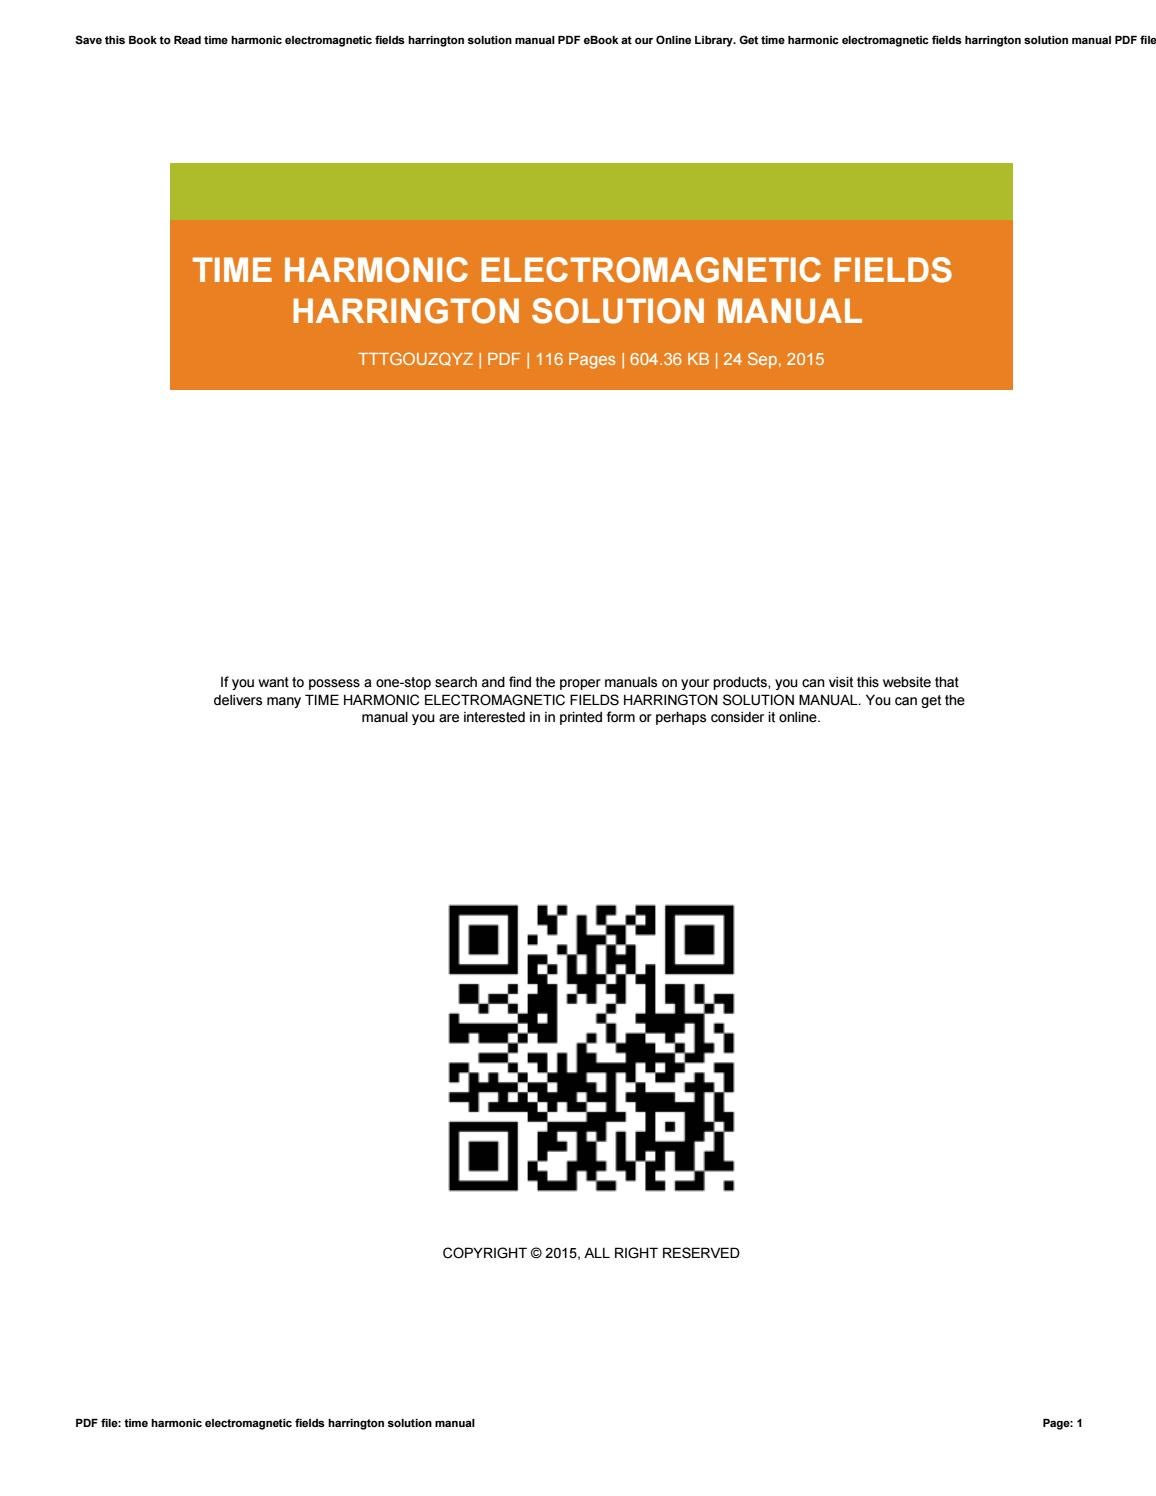 Time harmonic electromagnetic fields harrington solution manual by